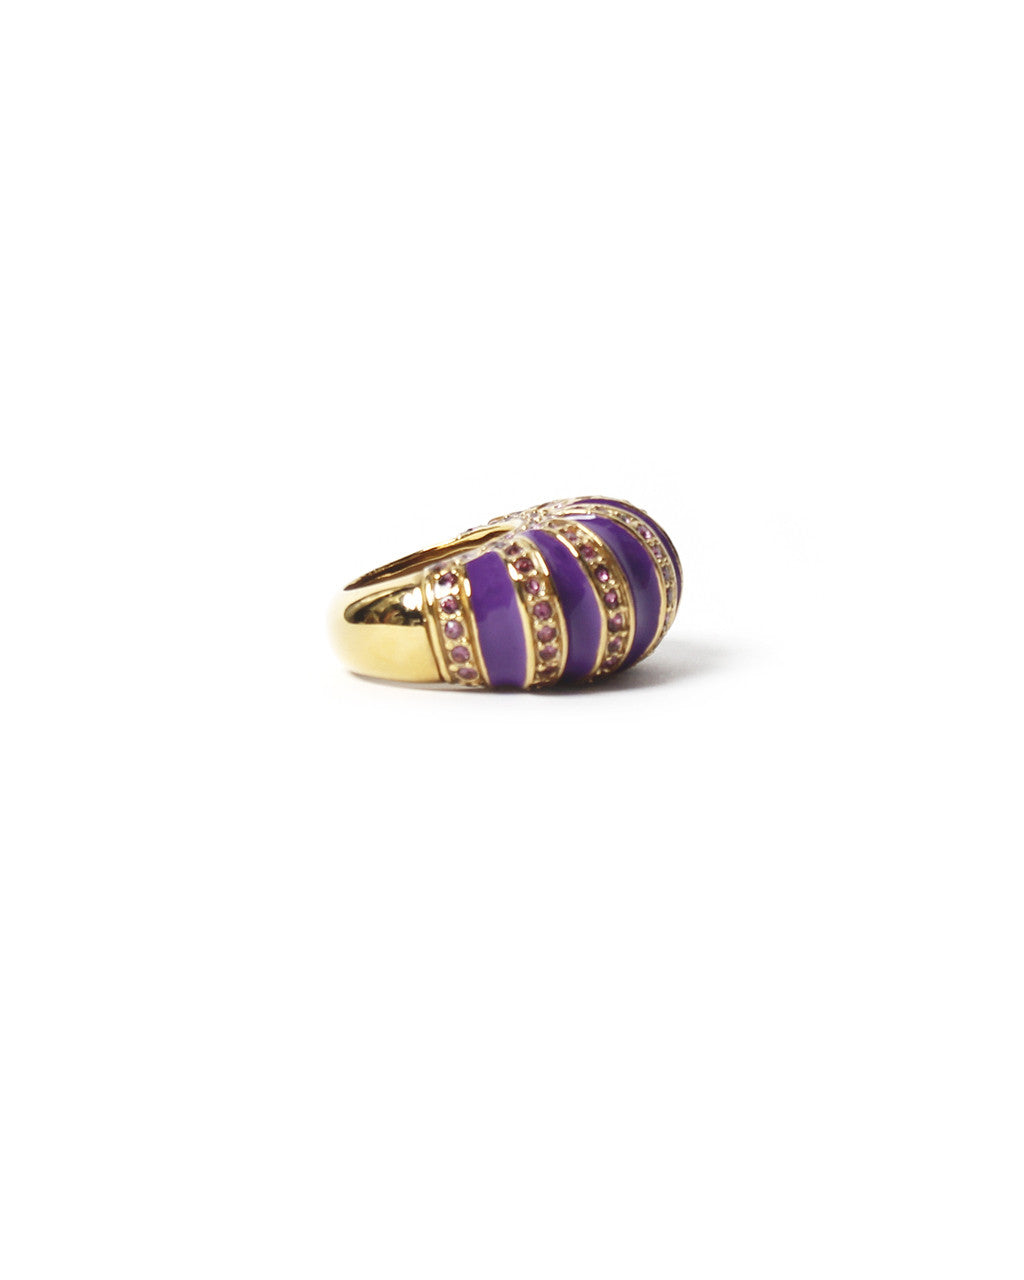 Etro Purple Rhinestones Cocktail Ring